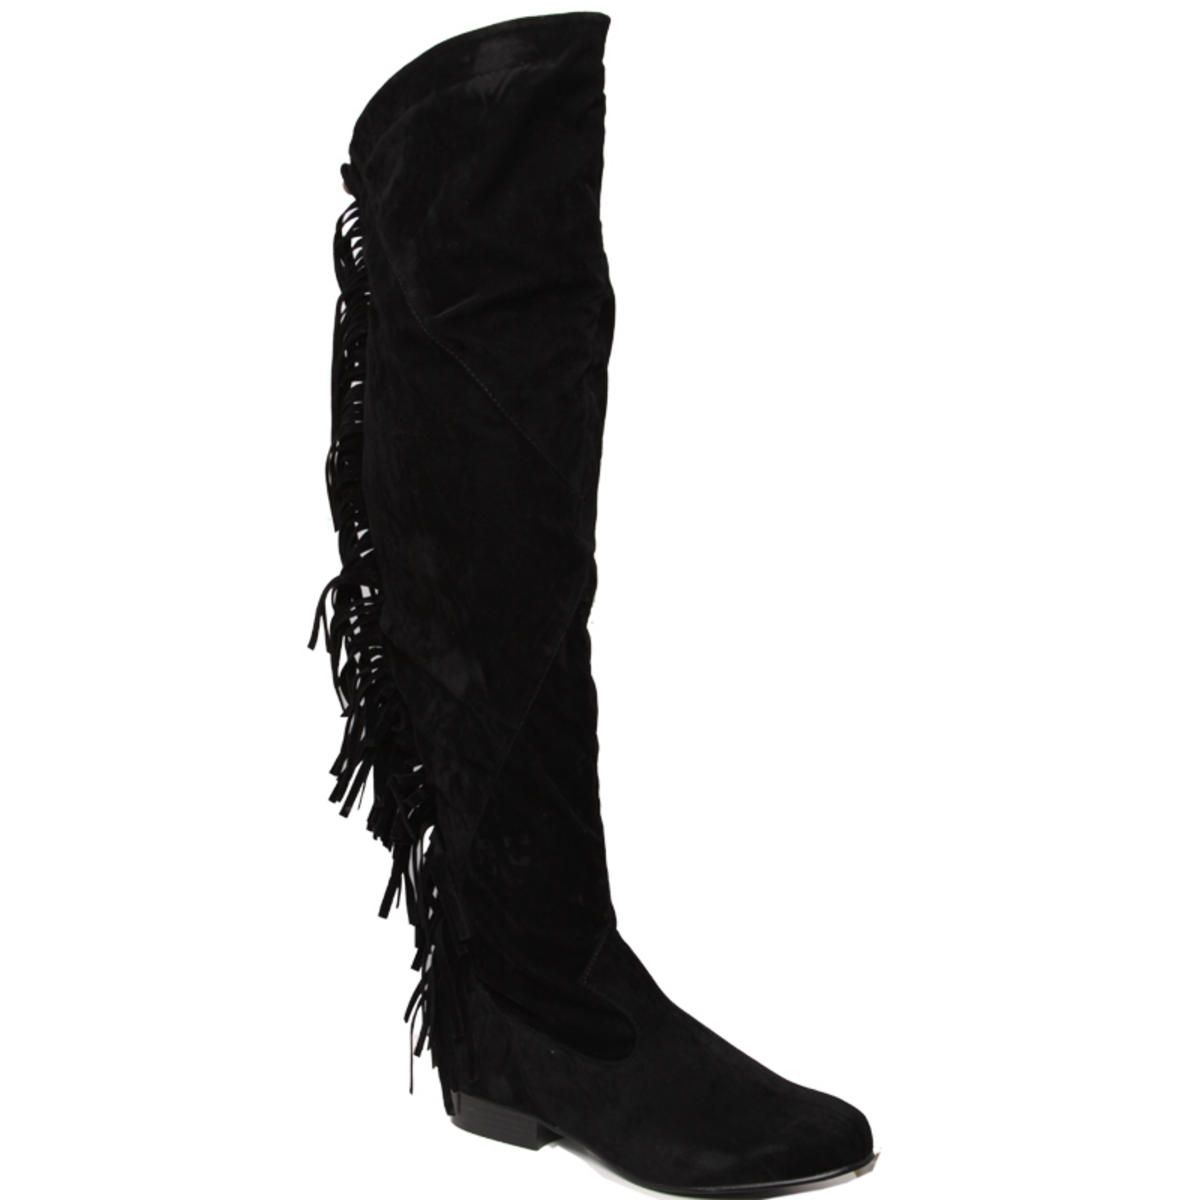 07e0d307811 thigh boots   Item Details - Suede Fringed Thigh Boots   BOOTS ...